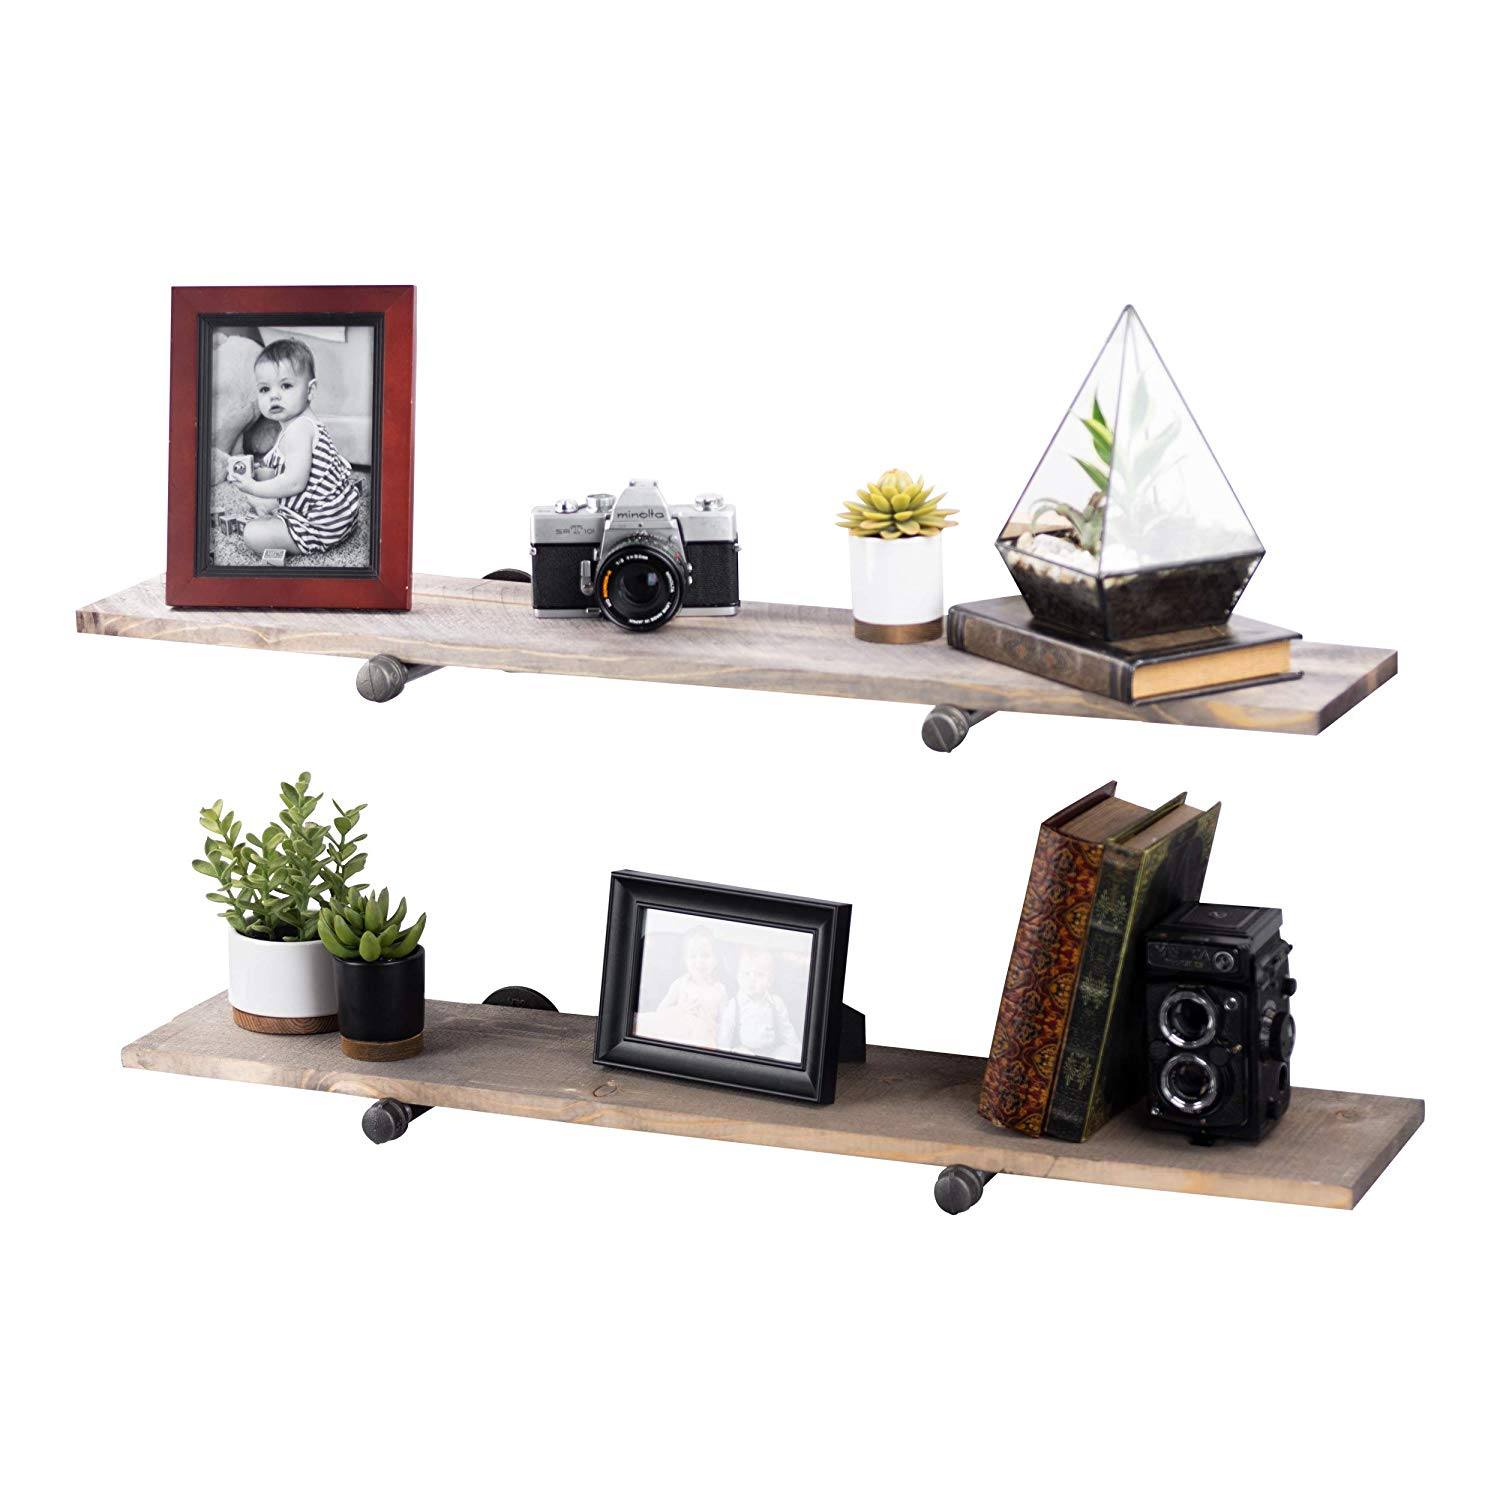 rustic industrial pipe decor floating shelving pack gray shelves distressed aged wood and iron pipes bracket wall mounted hanging shelf reclaimed barnwood beach coffee table shoe